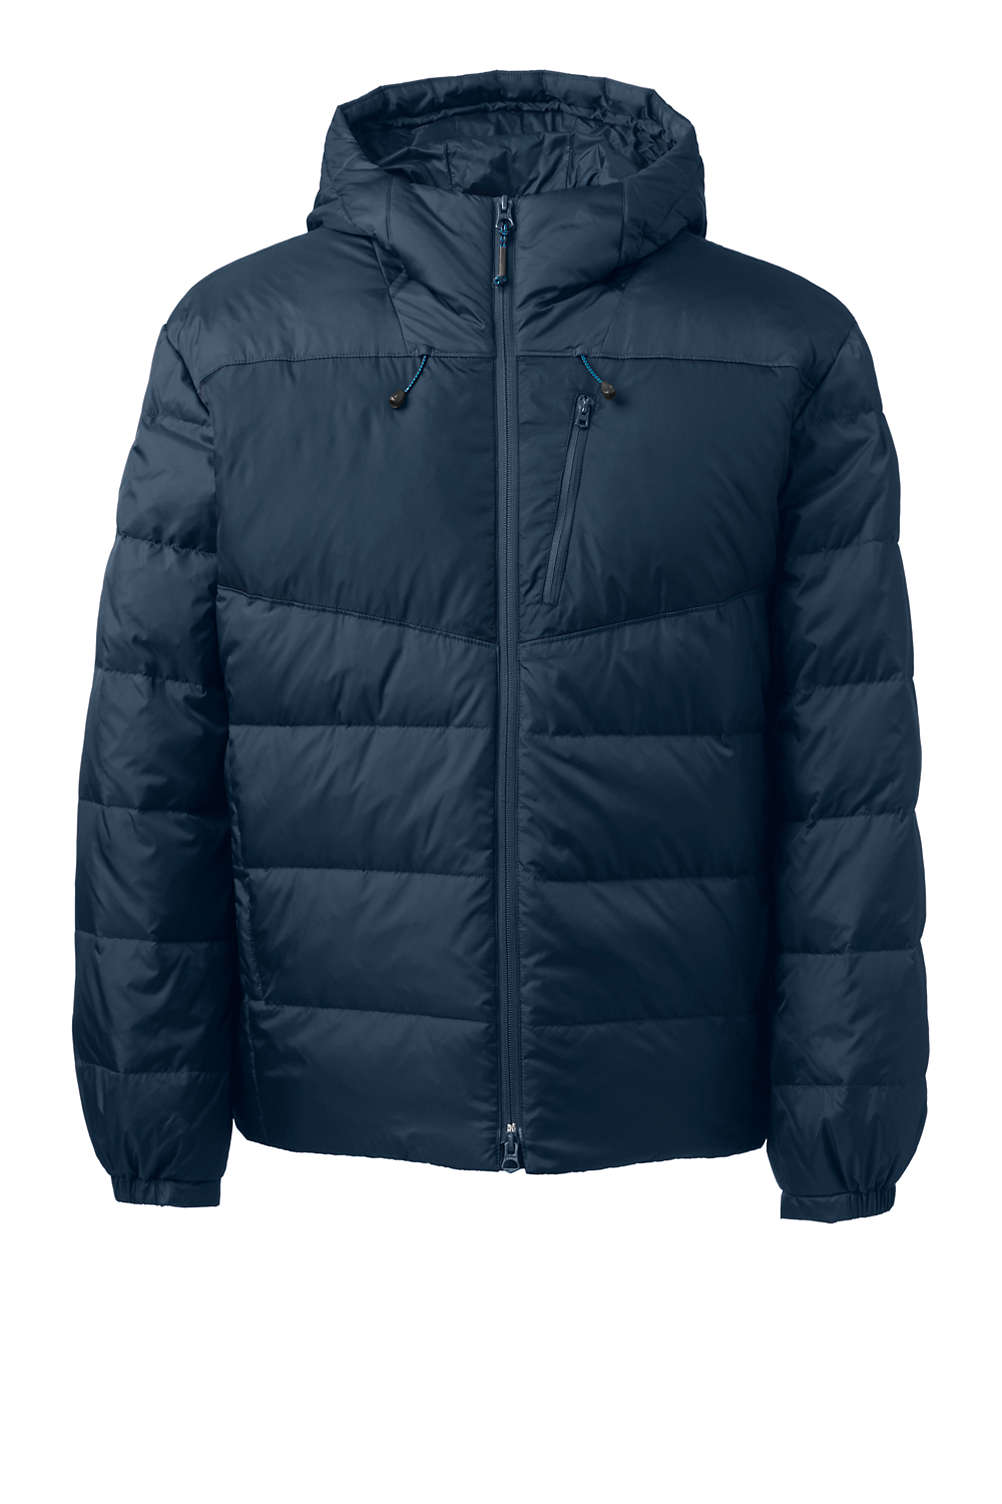 4704a7602ef Men's Expedition Down Puffer Jacket from Lands' End